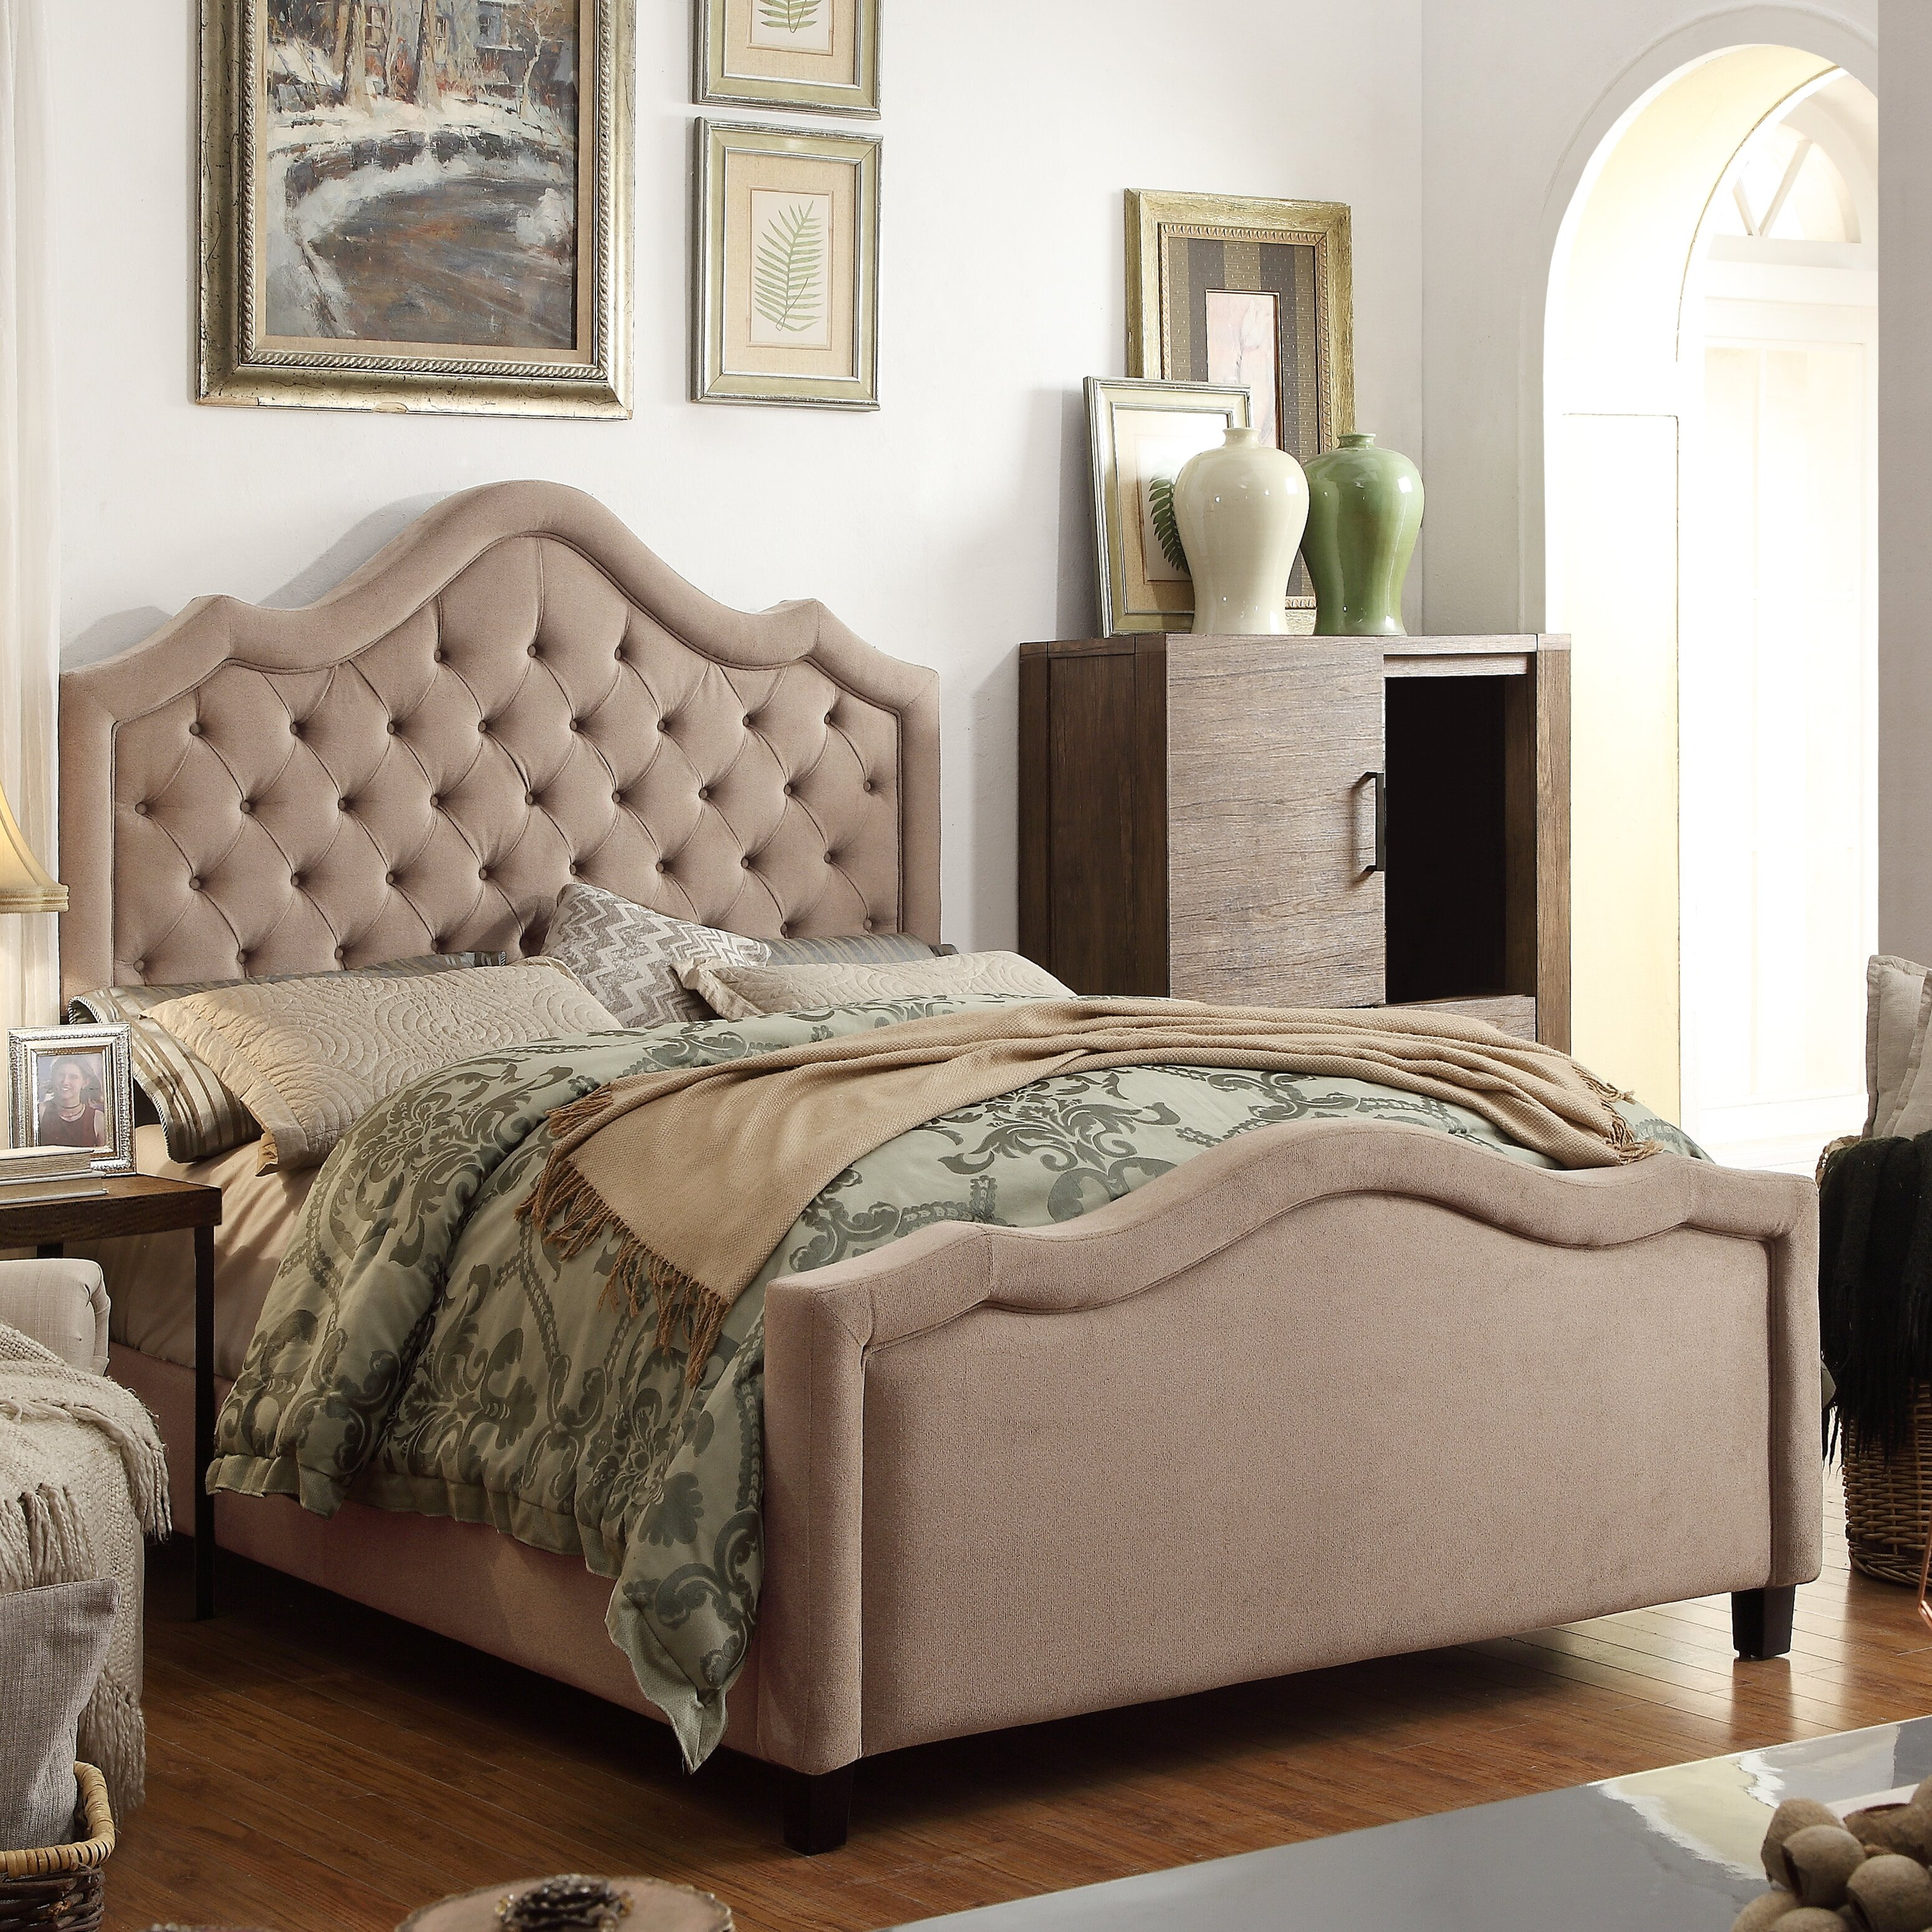 Mulhouse Furniture Alisa Queen Upholstered Panel Bed